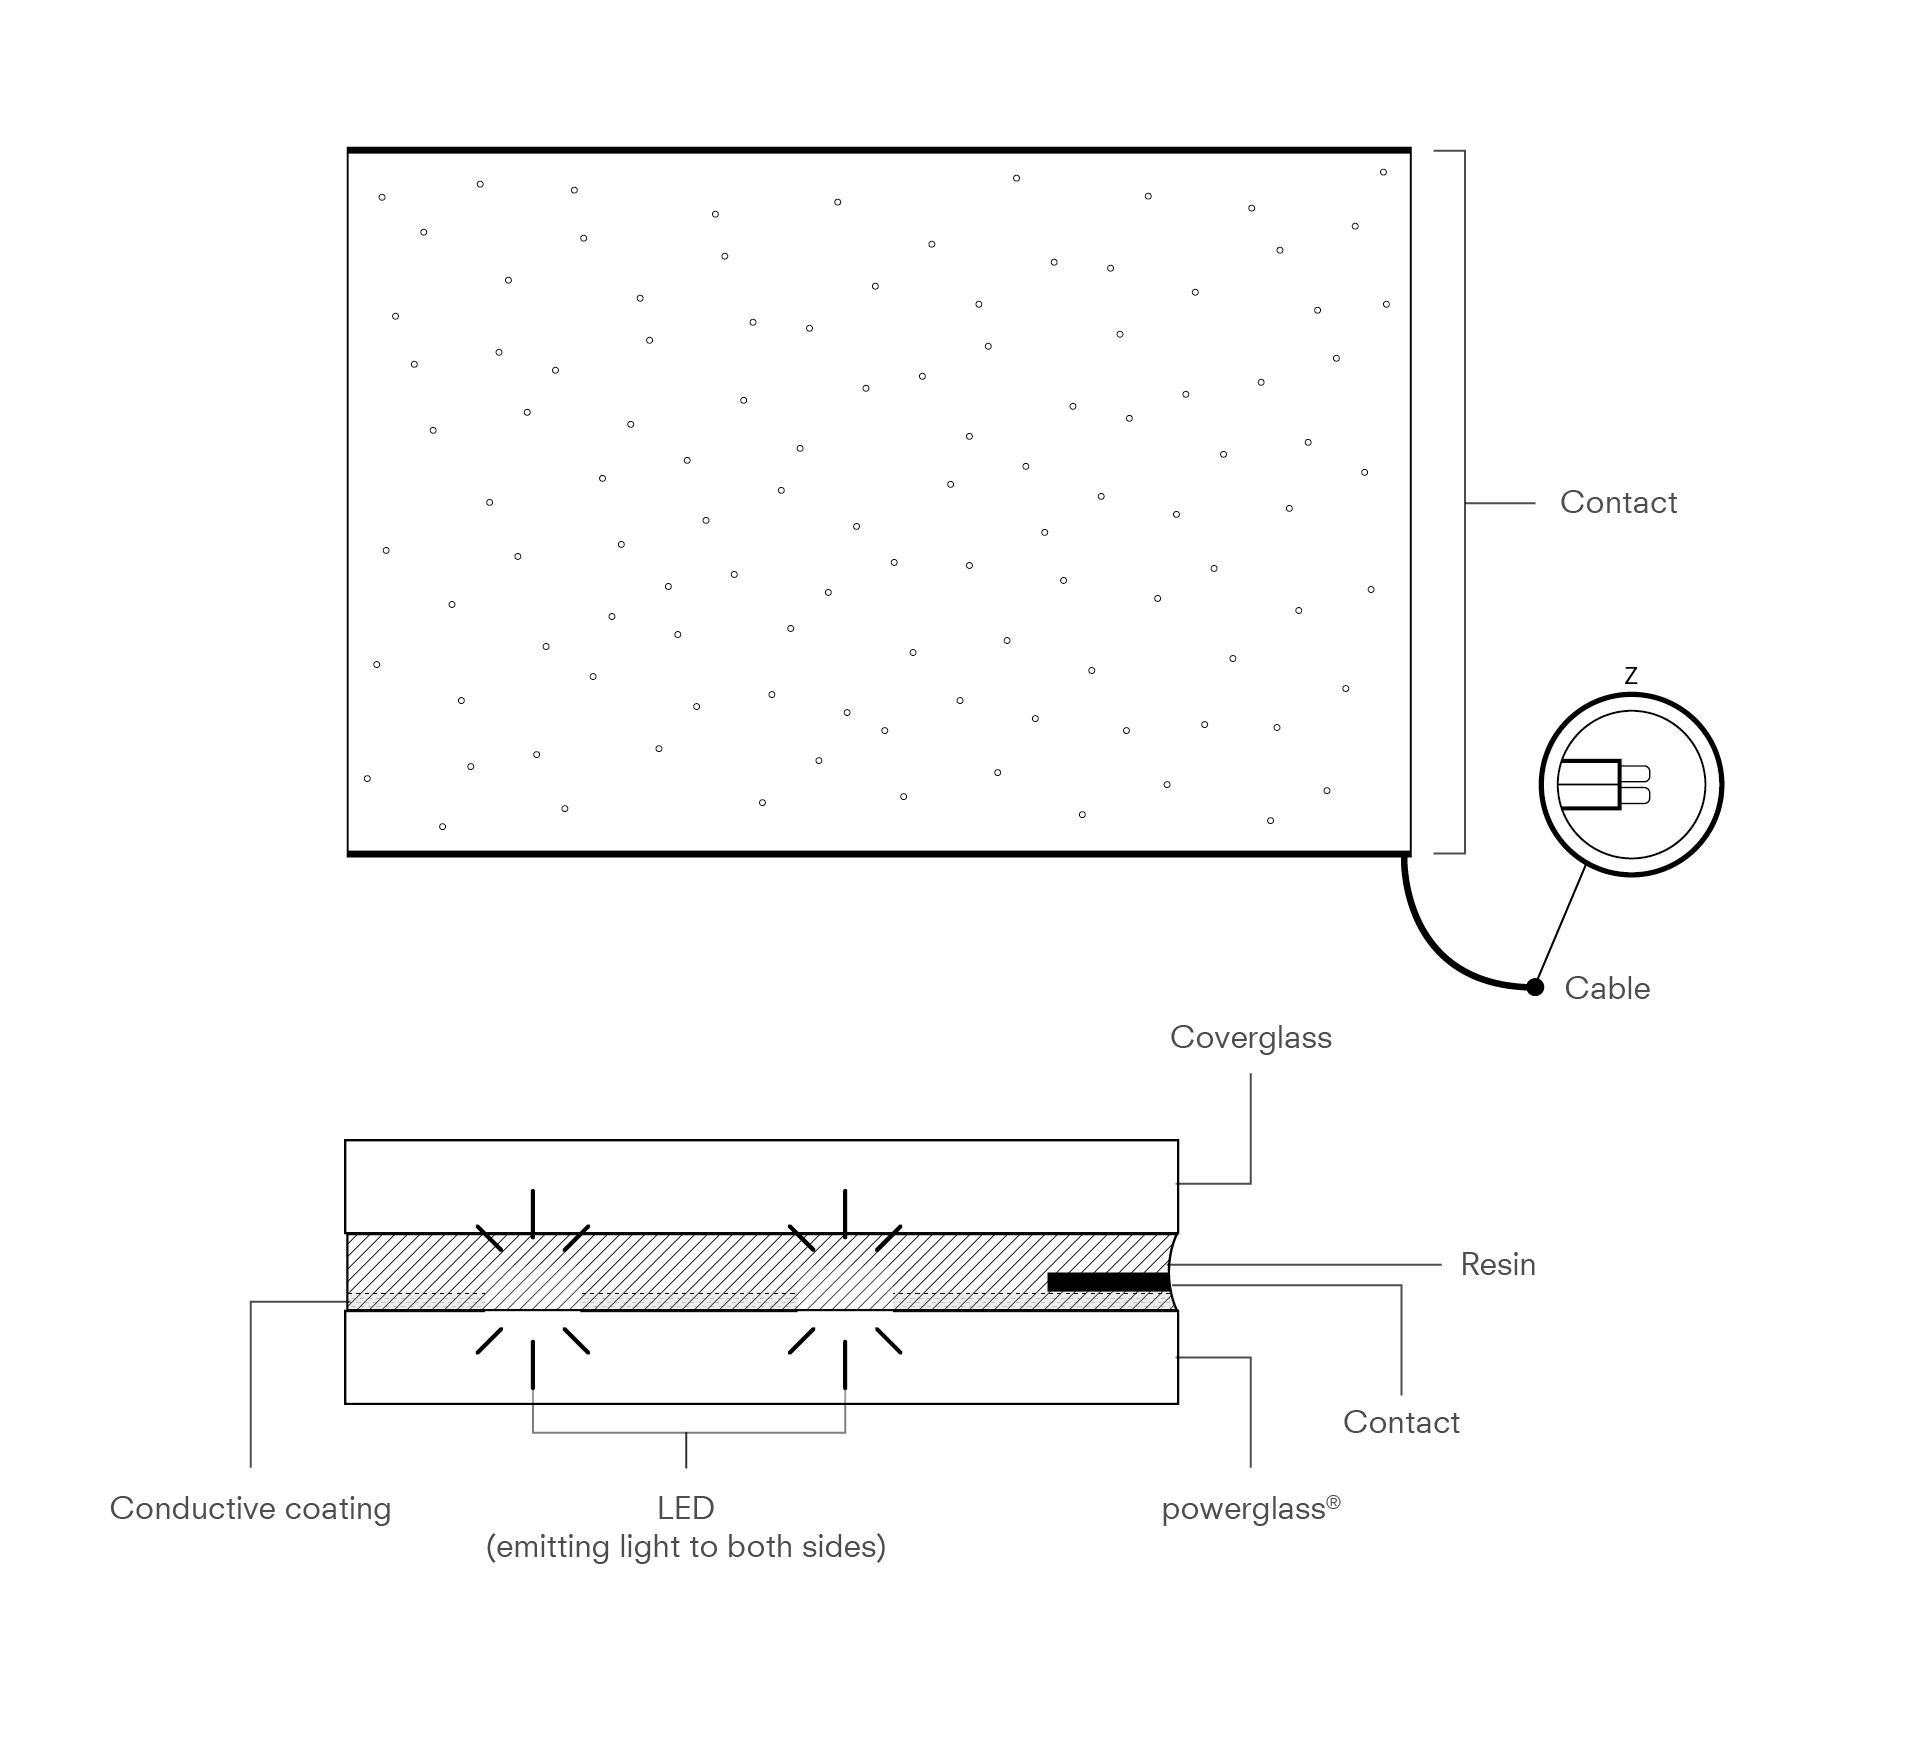 Peter Platz High Tech Laminated Glass With Integrated Light Lightemitting Diode Ledandlightcircuit Circuit Diagram Further Development Of Led Lighting Technology Made It Possible To Merge And Without Wires Into Powerglass Generate Fascinating